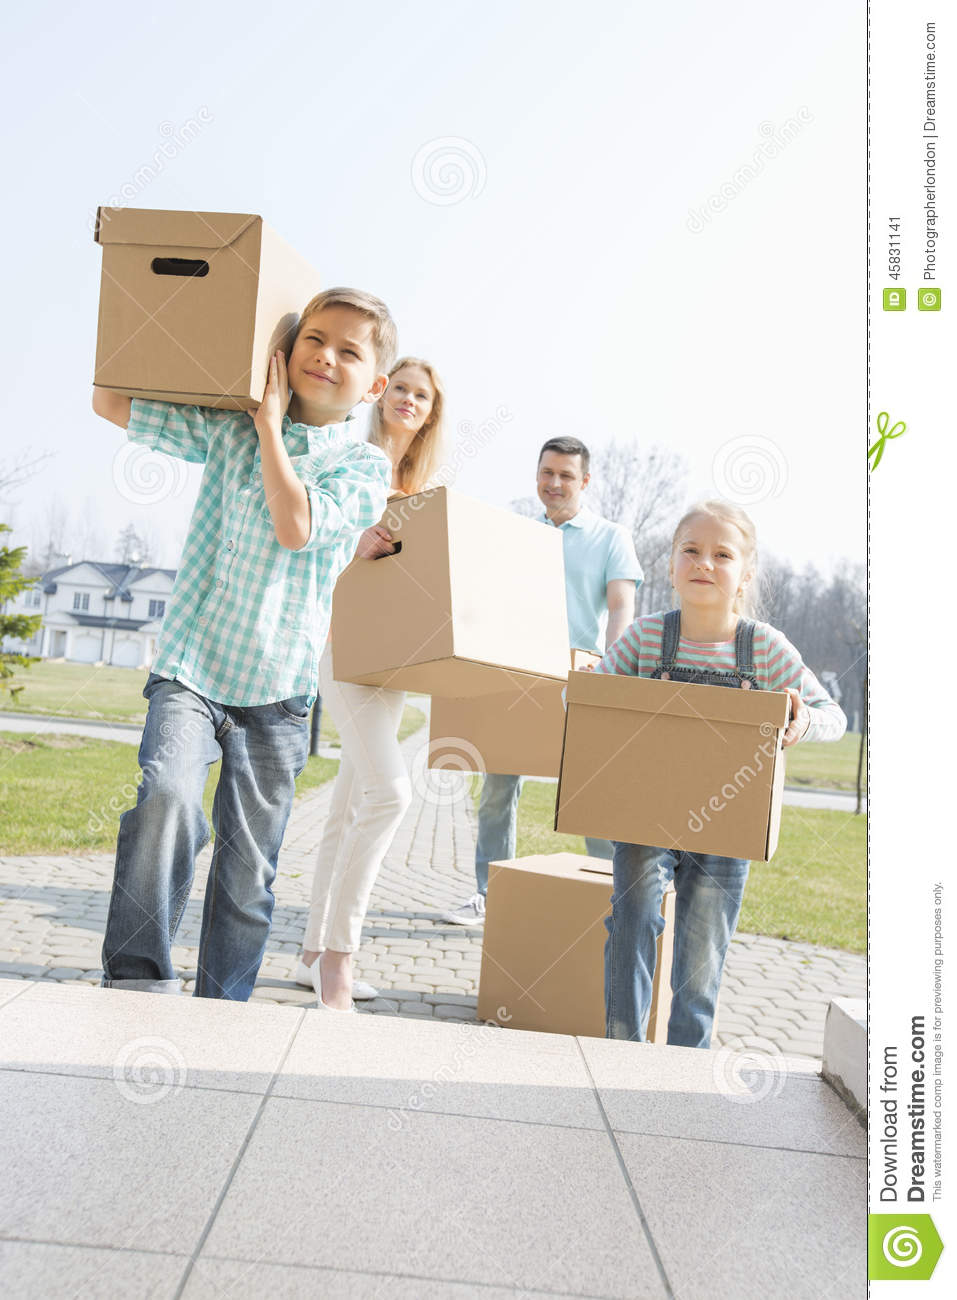 family carrying cardboard boxes while entering new house stock image image of ethnicity 12. Black Bedroom Furniture Sets. Home Design Ideas